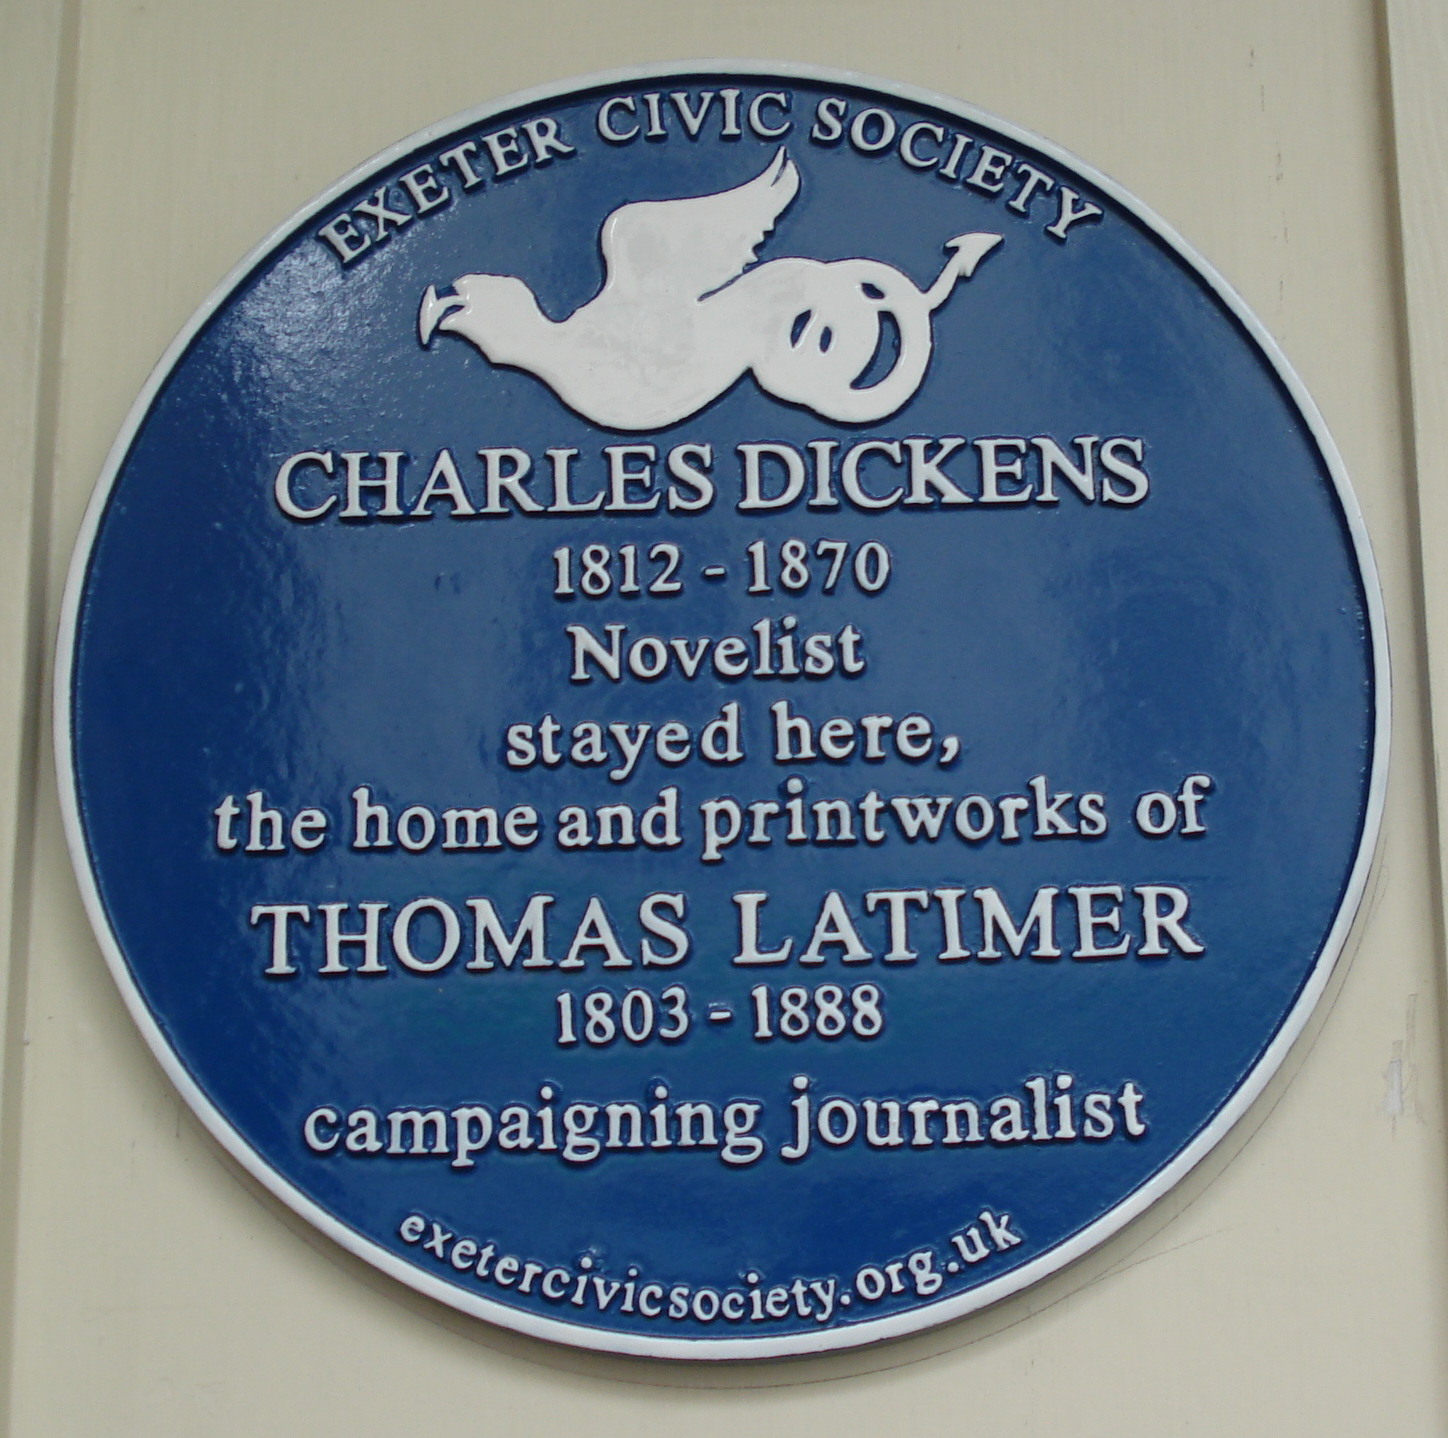 Charles Dickens and Thomas Latimer | 143 Fore Street